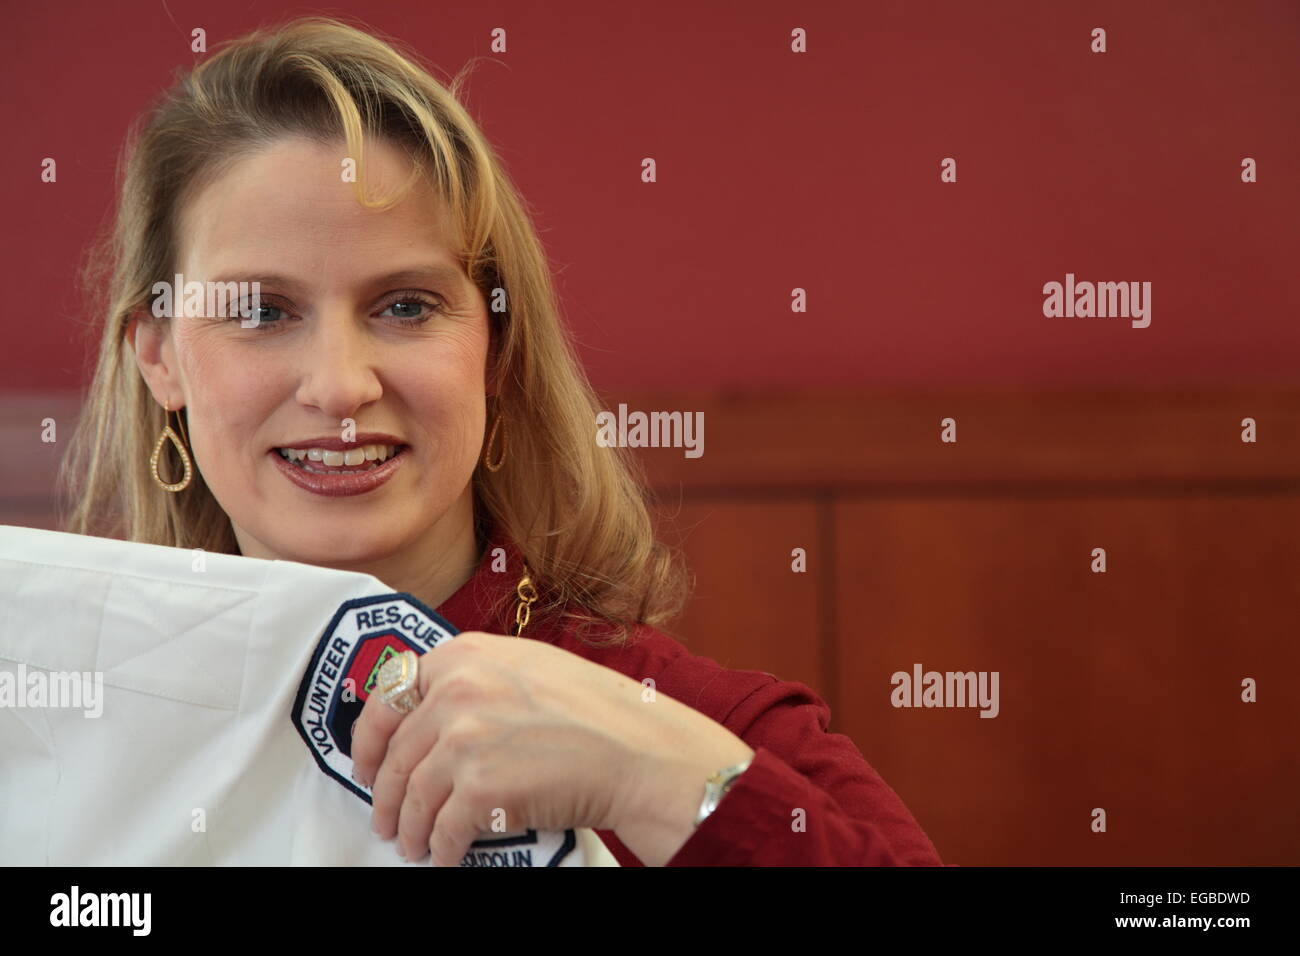 Volunteer EMT - Stock Image